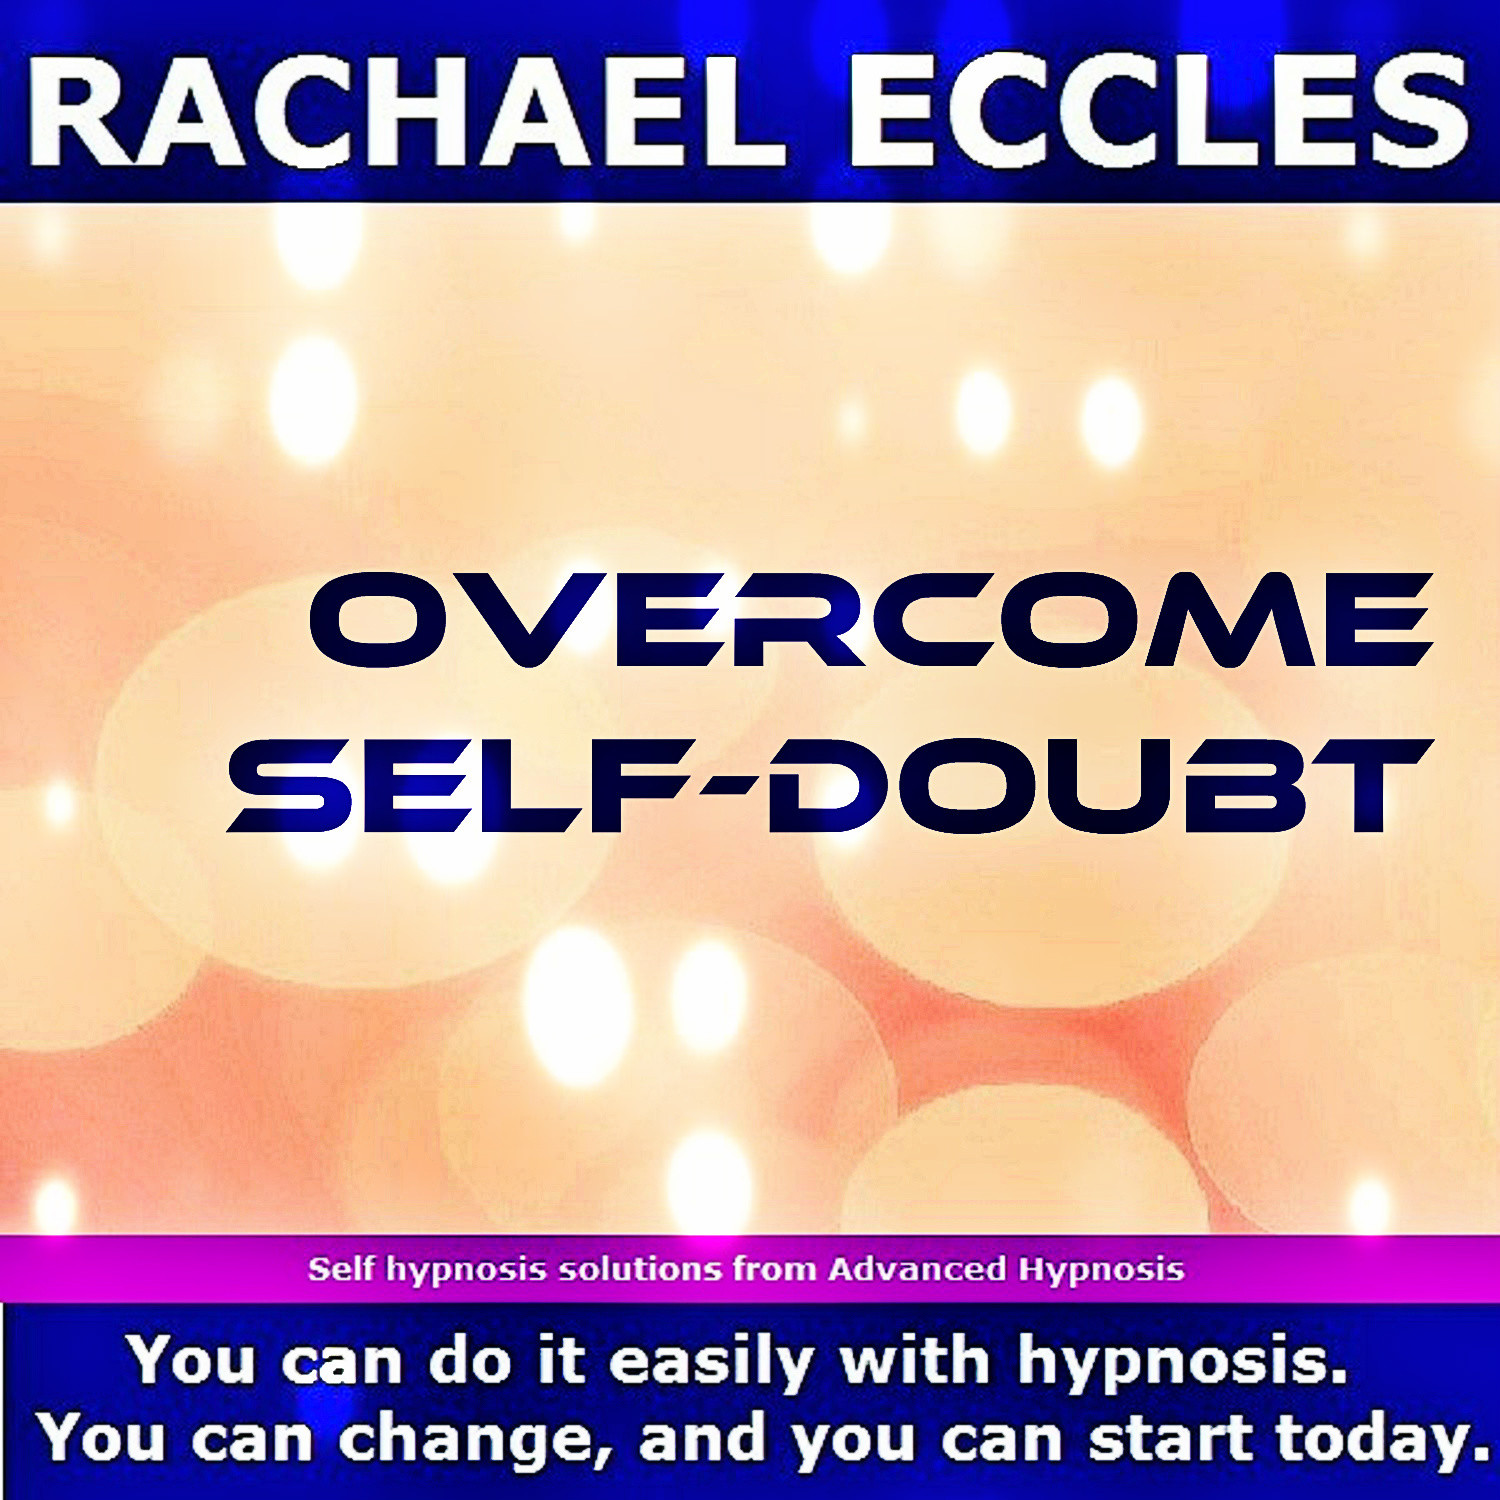 Overcome Self Doubt, Become More Sure of Yourself, Trust Your Own Opinions Hypnosis Download or CD